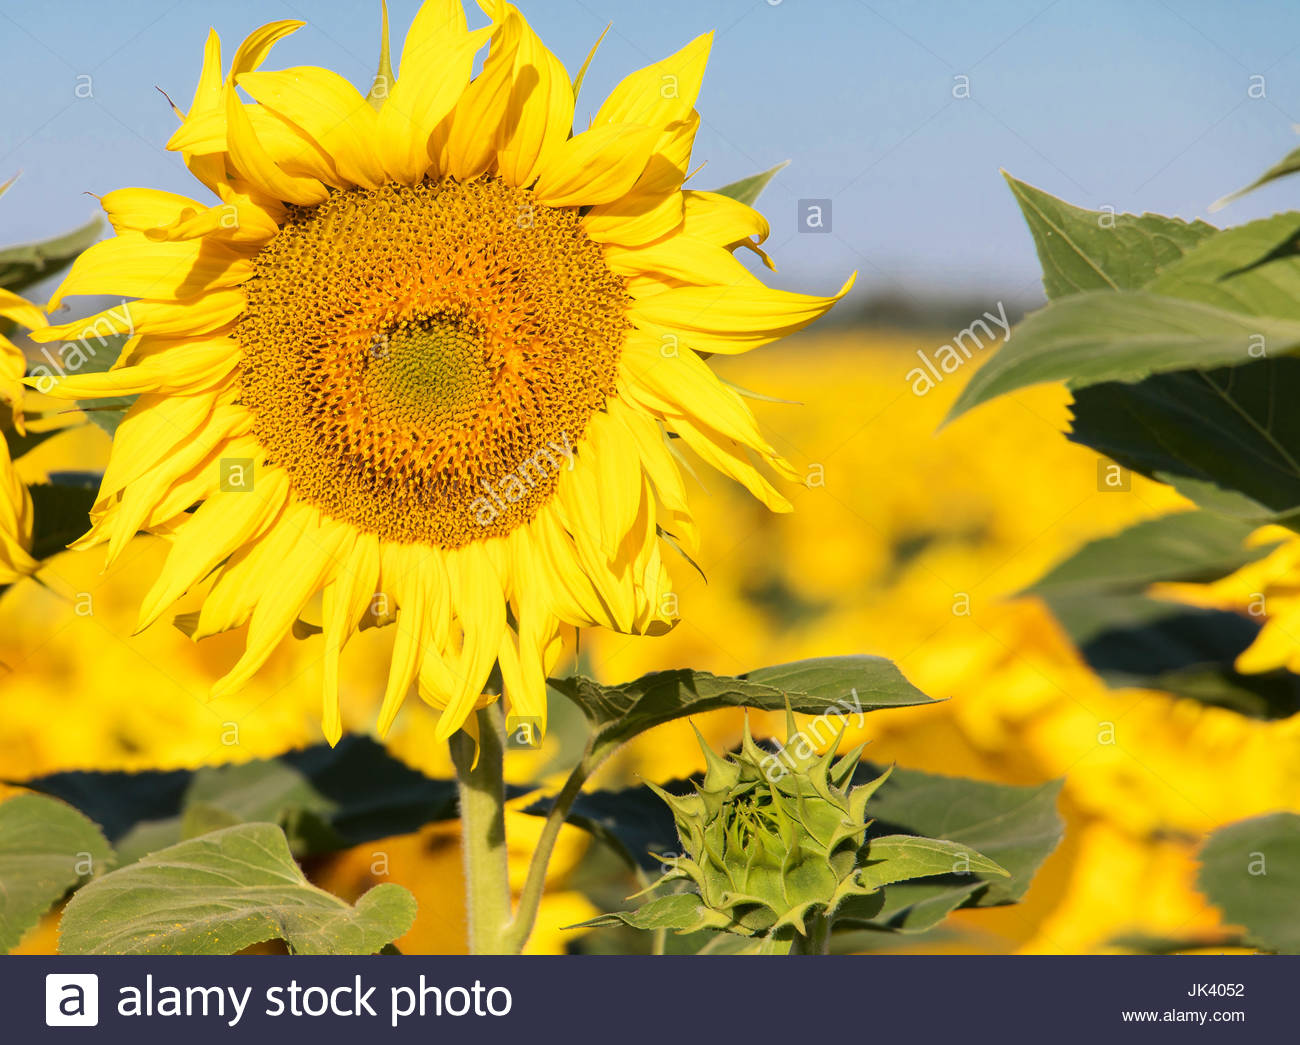 Sunflowers provence france sunflower blooms circular flower sunflowers provence france sunflower blooms circular flower concept sunflower close up colour flowers flower photography beautiful flowers izmirmasajfo